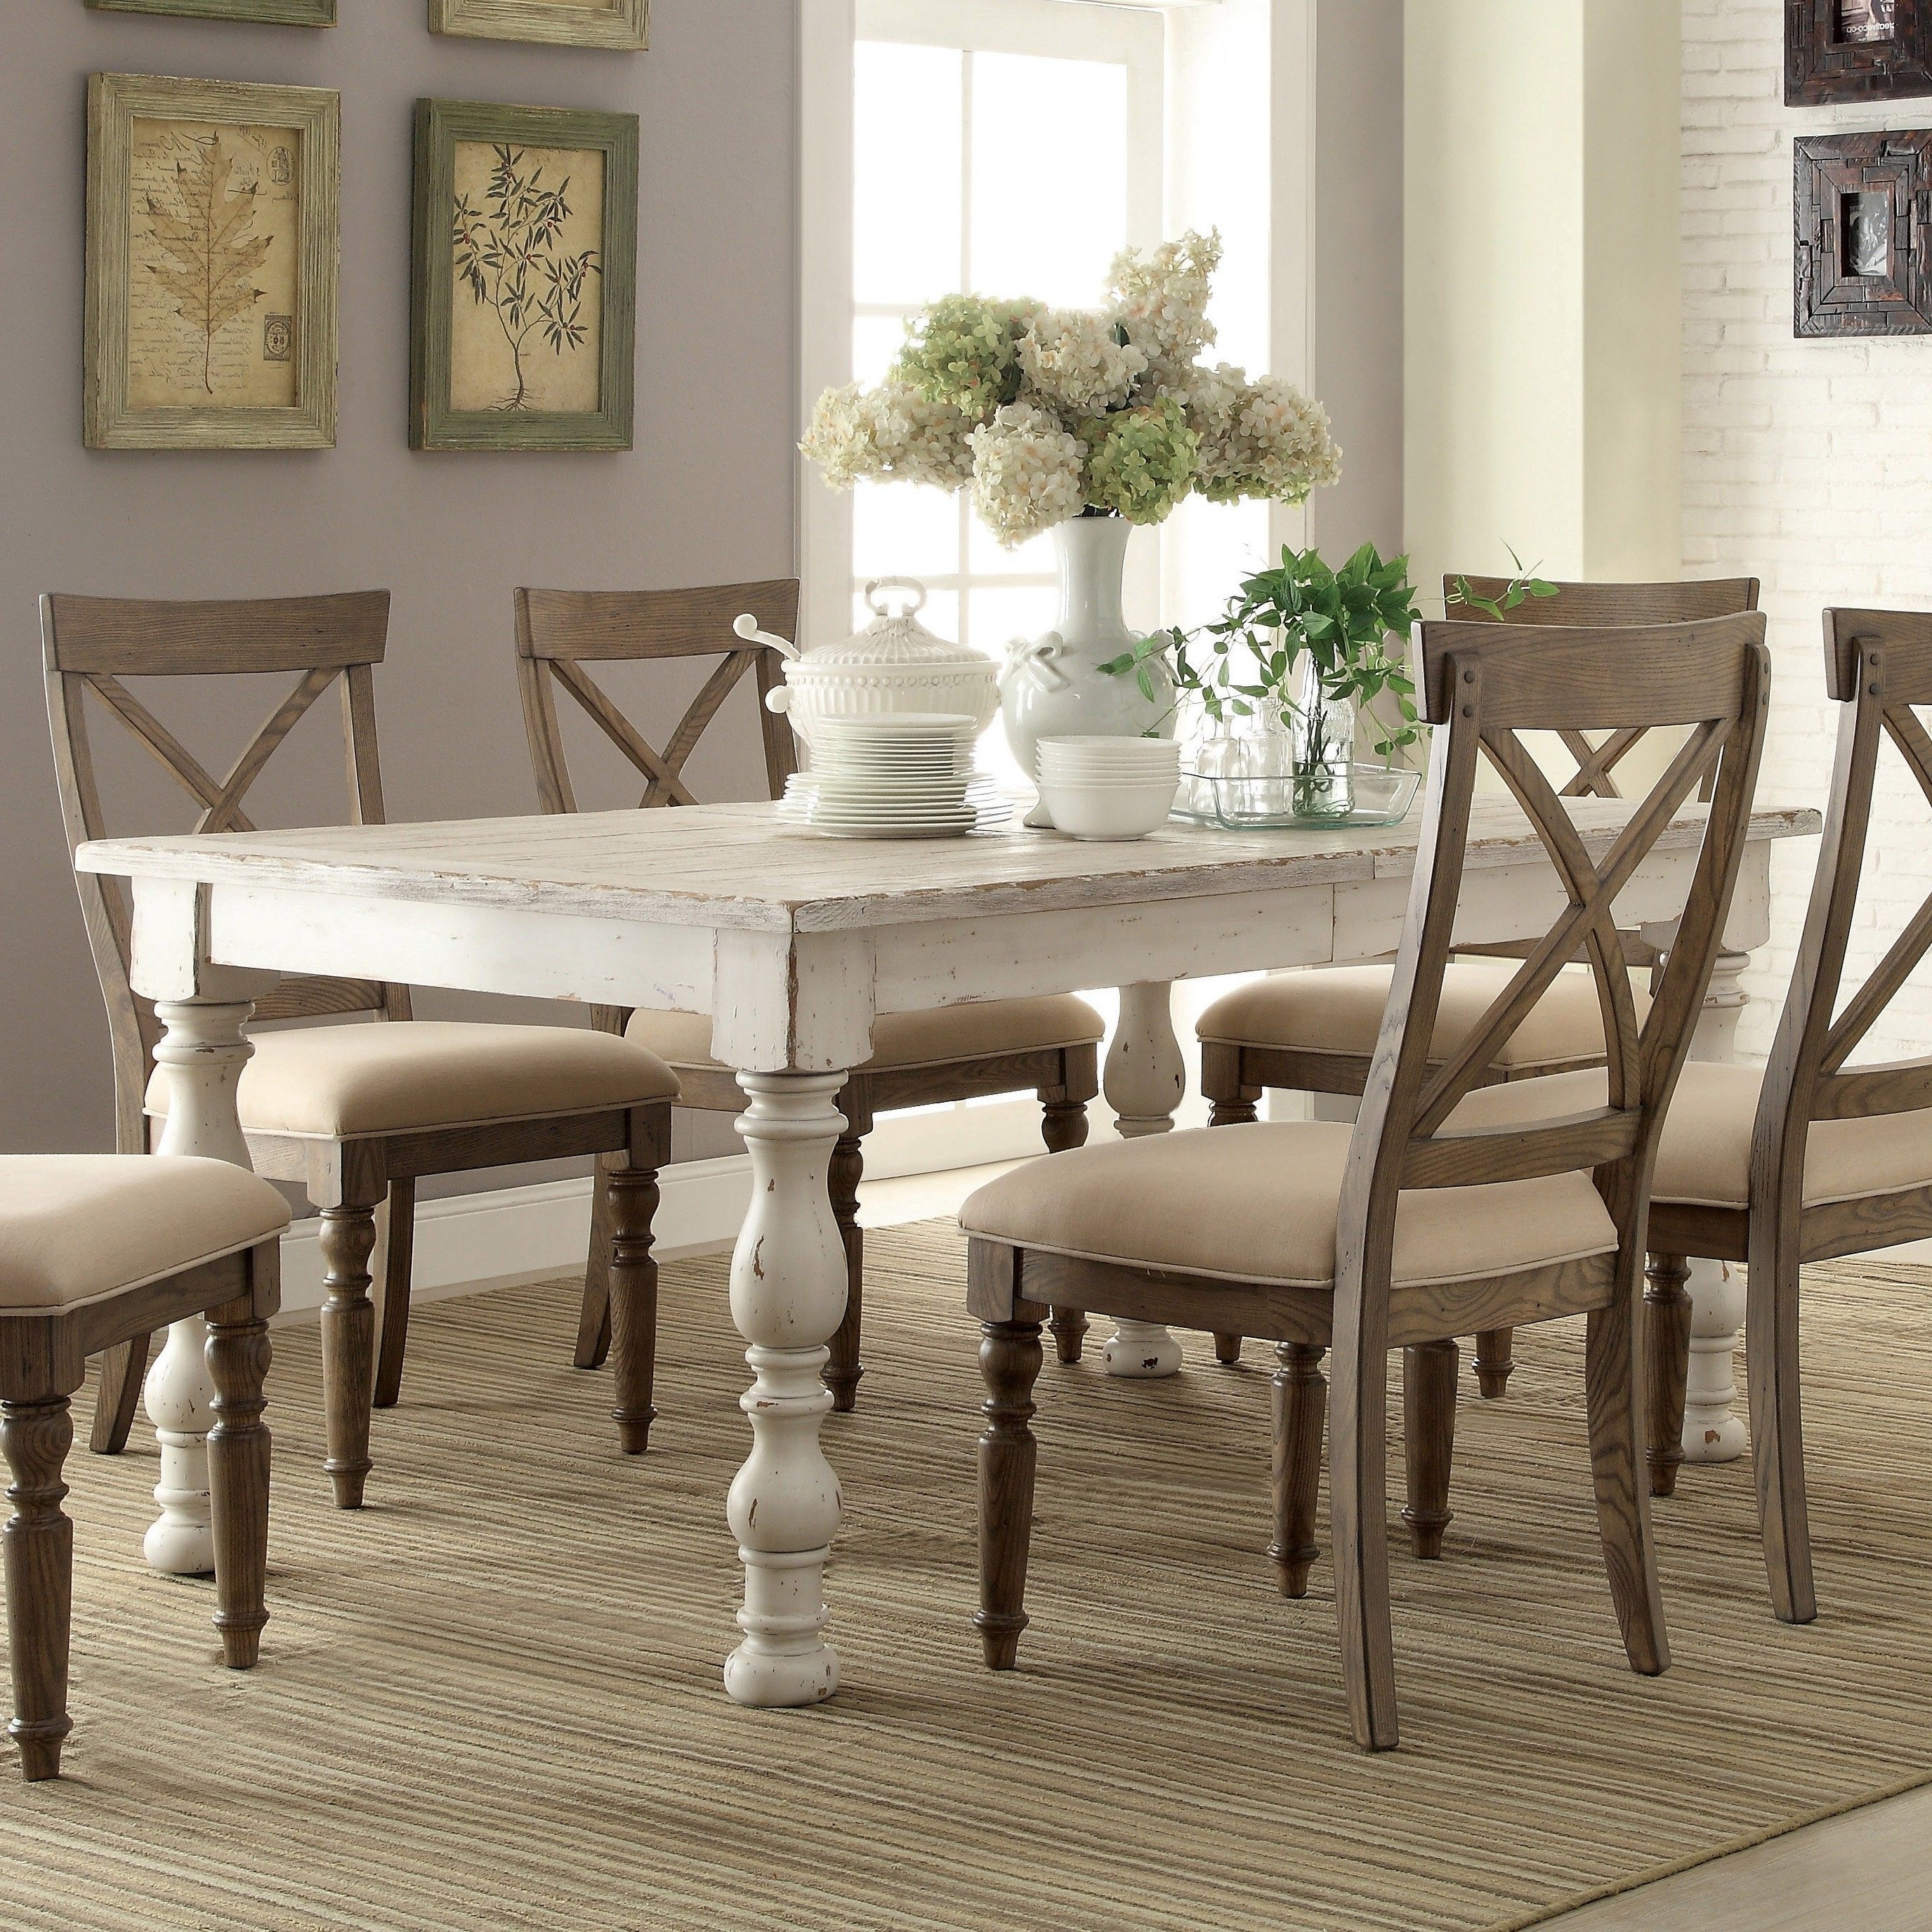 Aberdeen Wood Rectangular Dining Table Only In Weathered Worn White Intended For Well Known Dining Room Chairs Only (View 11 of 25)